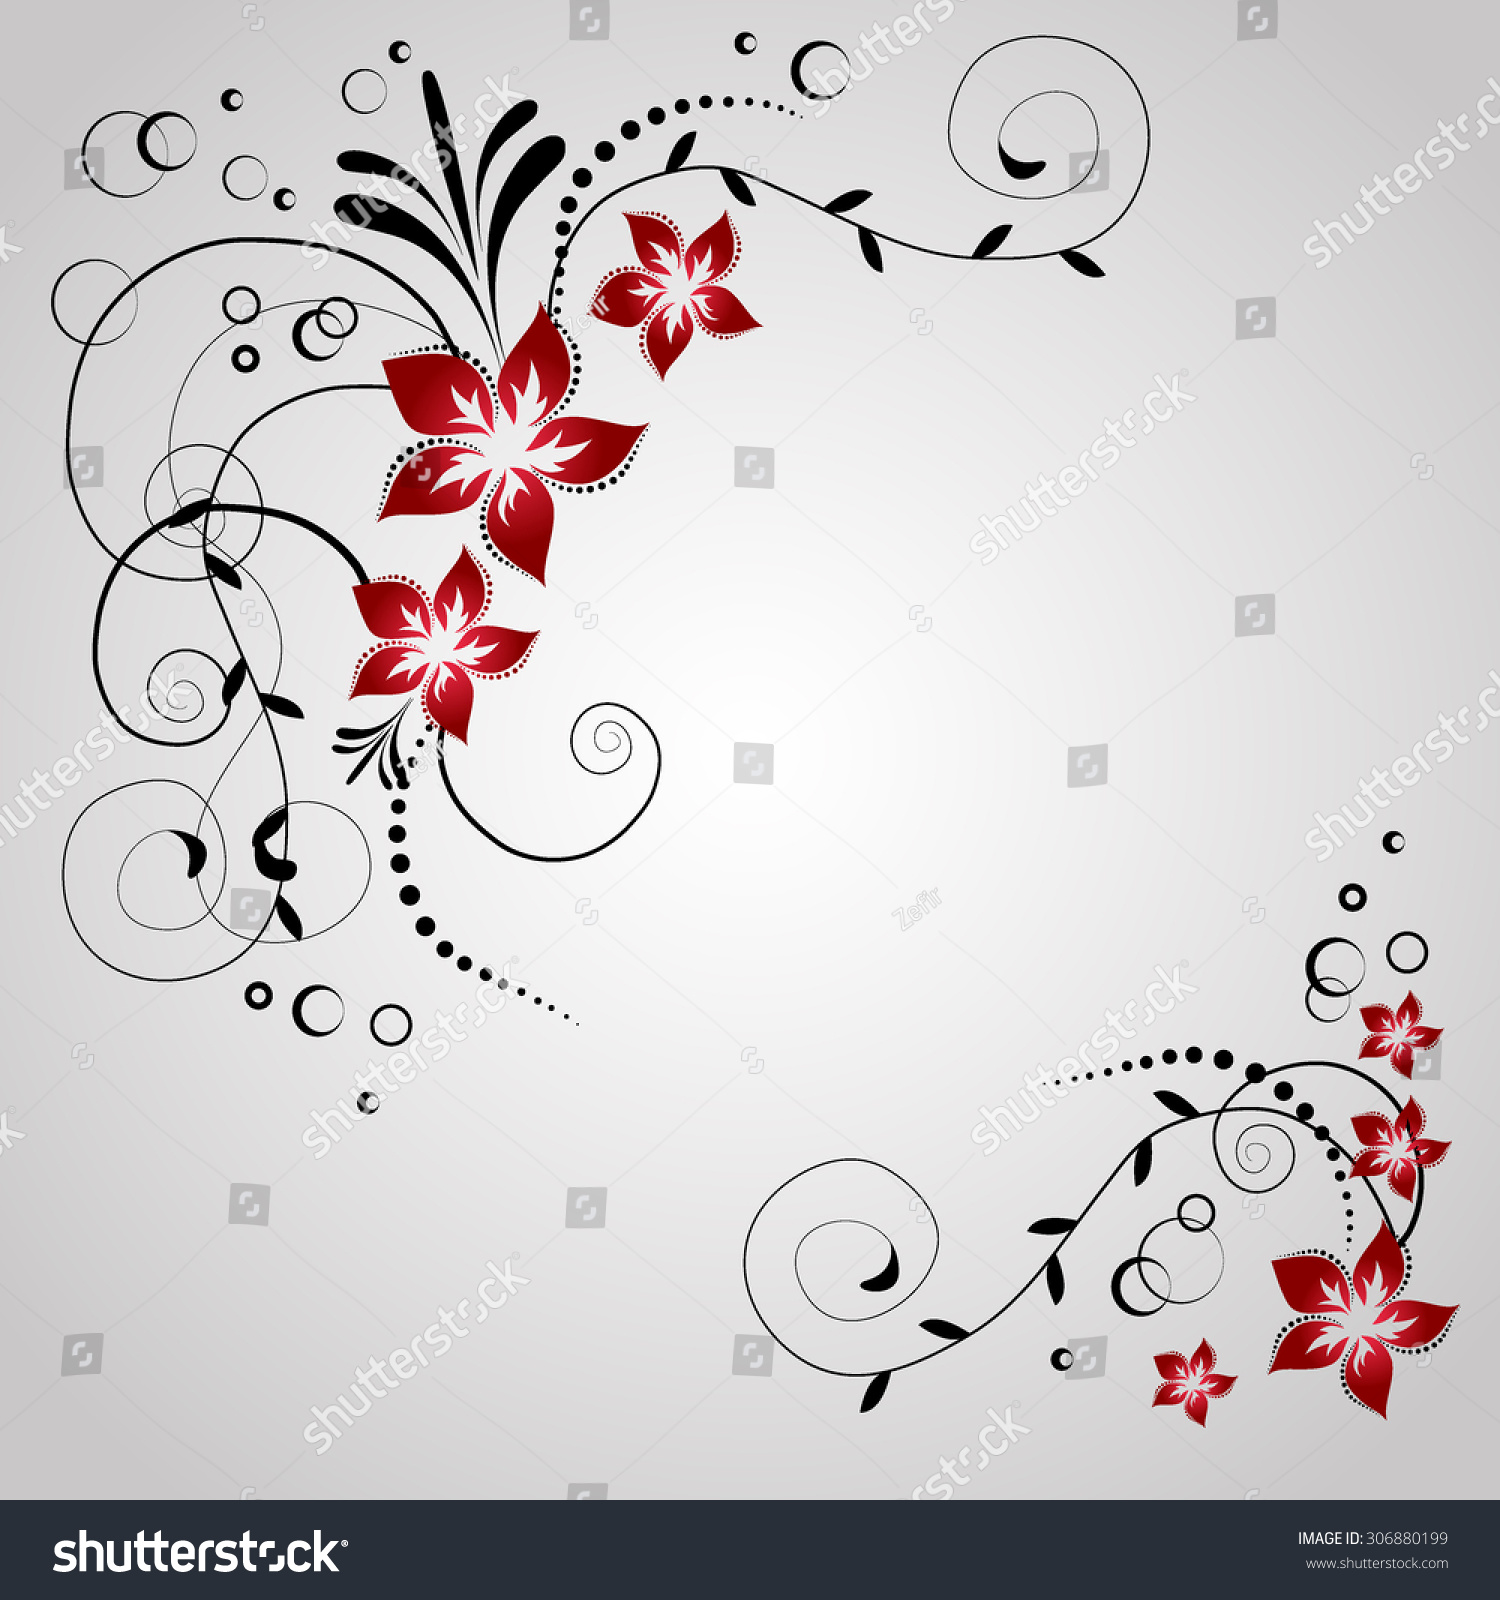 Corner Flowers Invitation Card Swirl Flowers Stock Vector HD ...